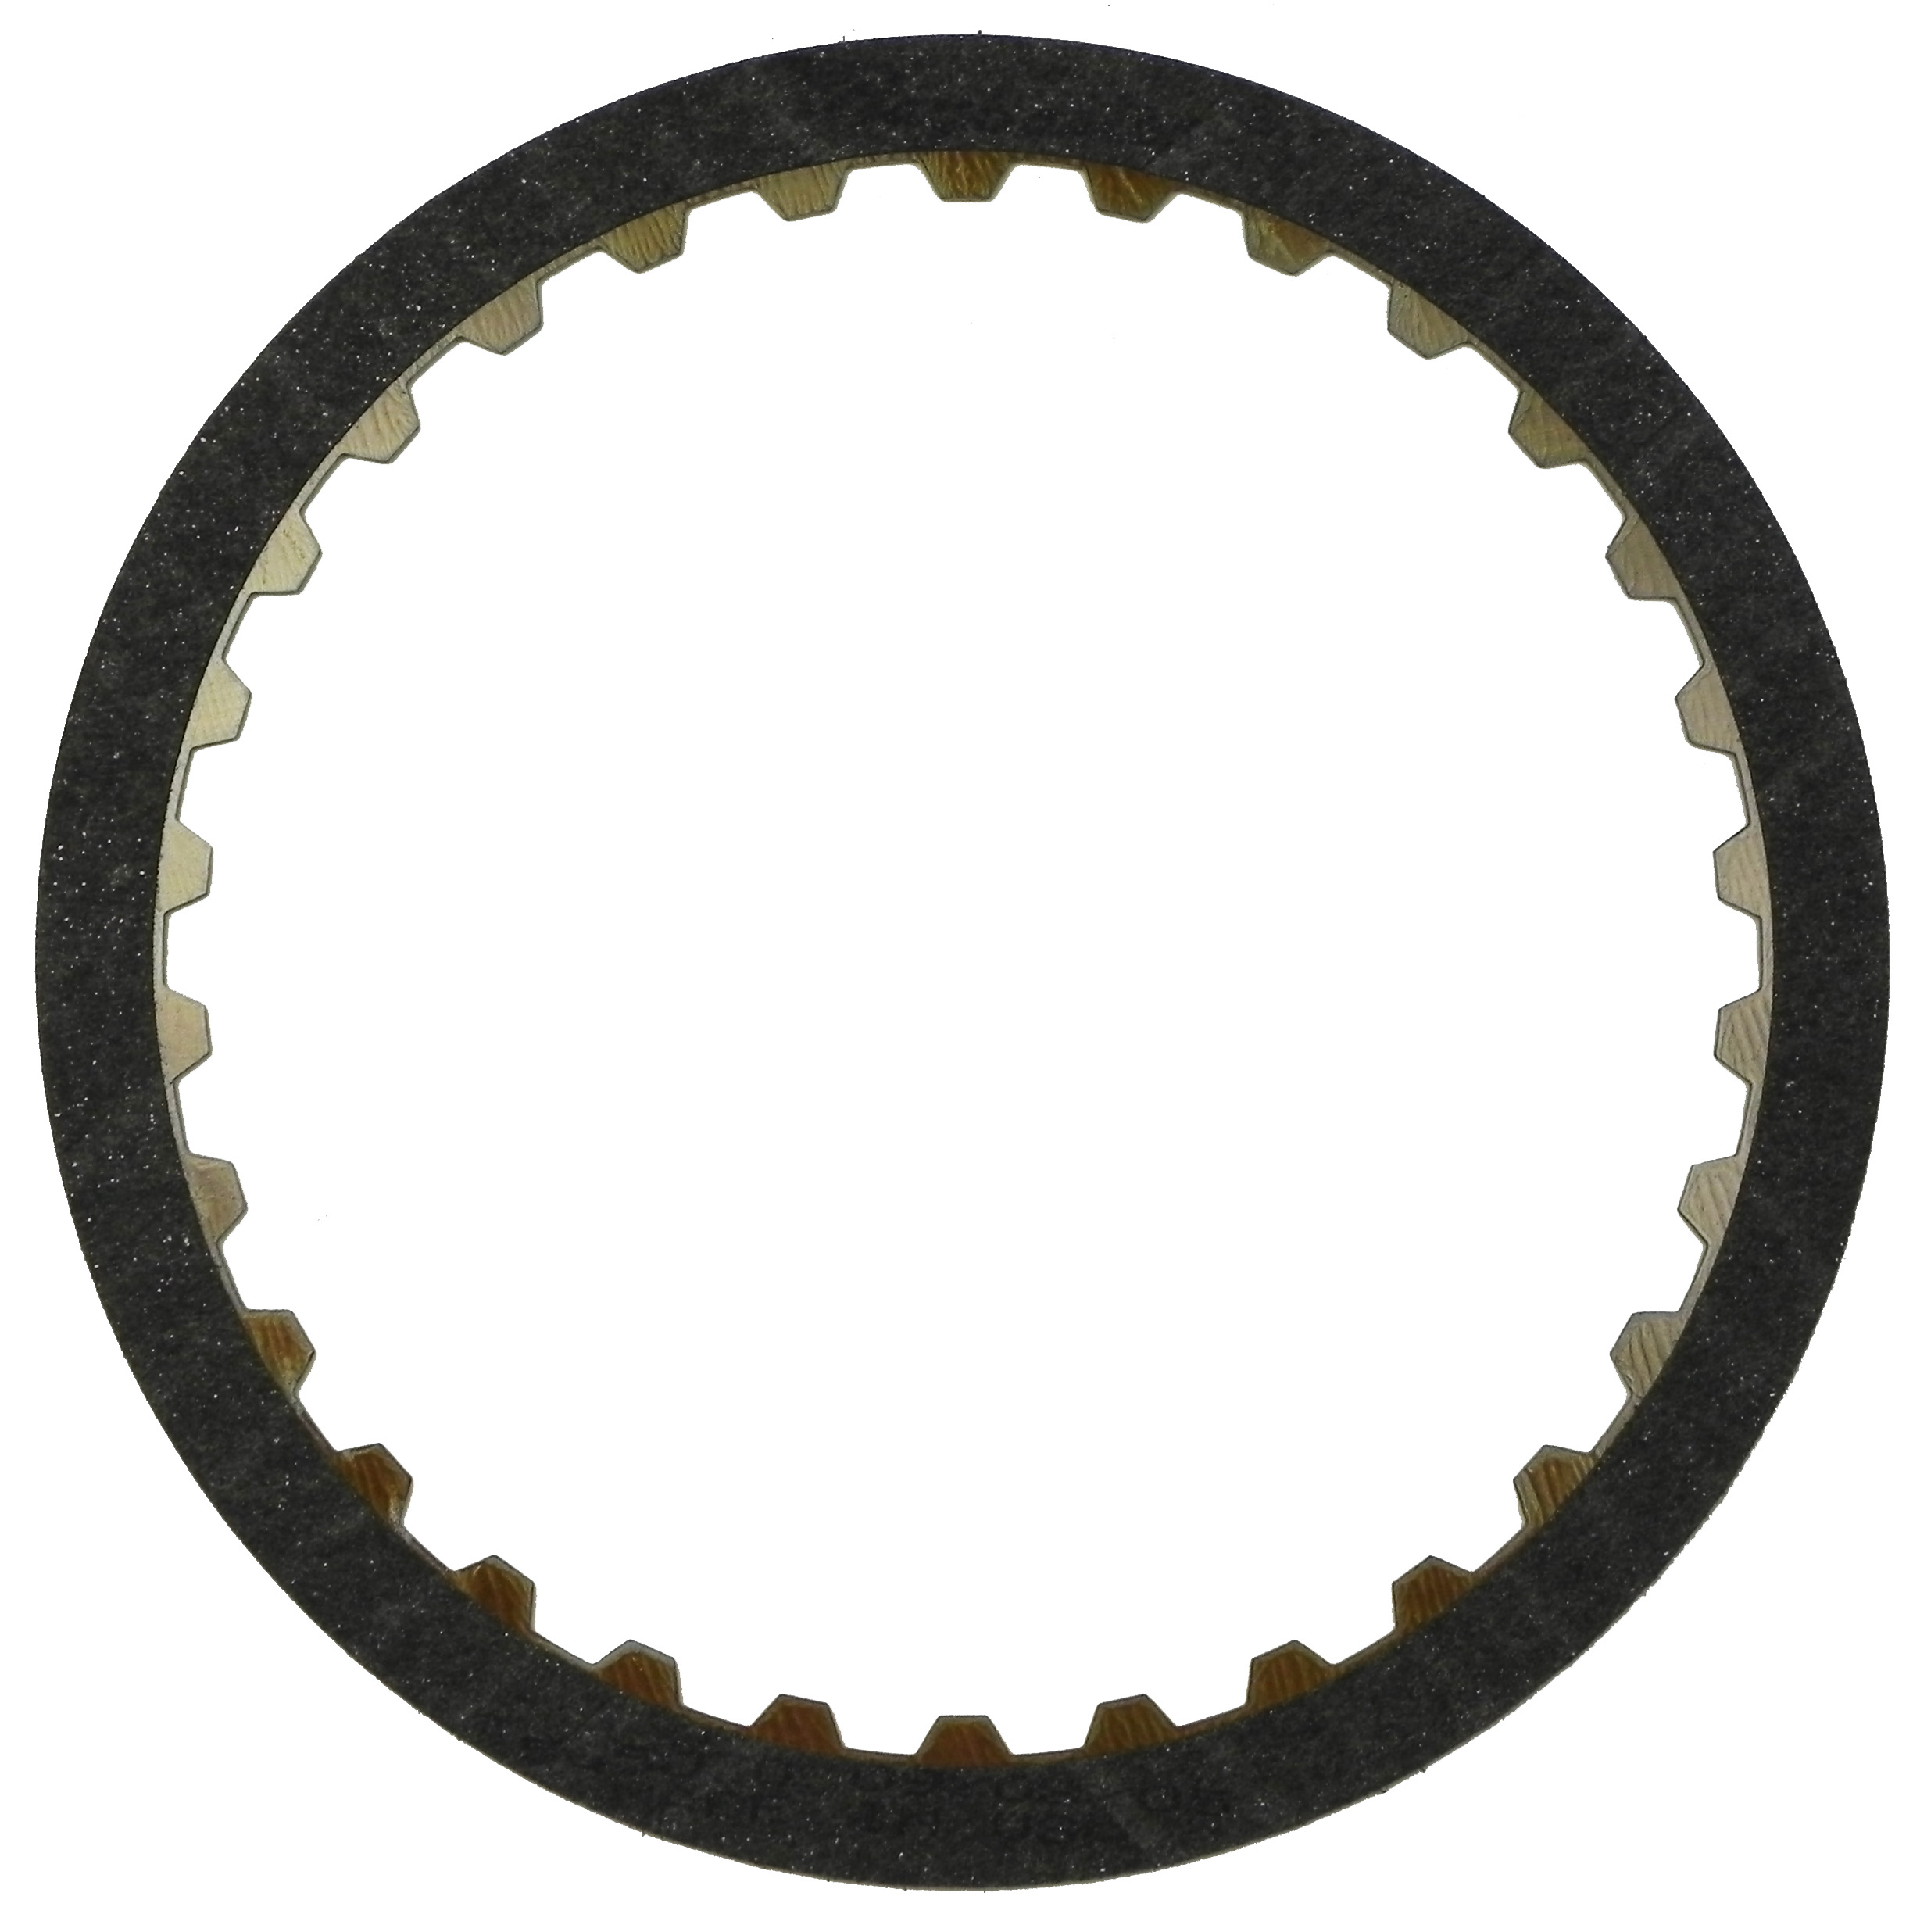 F4A41, F4A42, F5A42, F4A51, F4A51-2, F4A5A, F5A51, A5GF1, F1C1, CVT High Energy Friction Clutch Plate